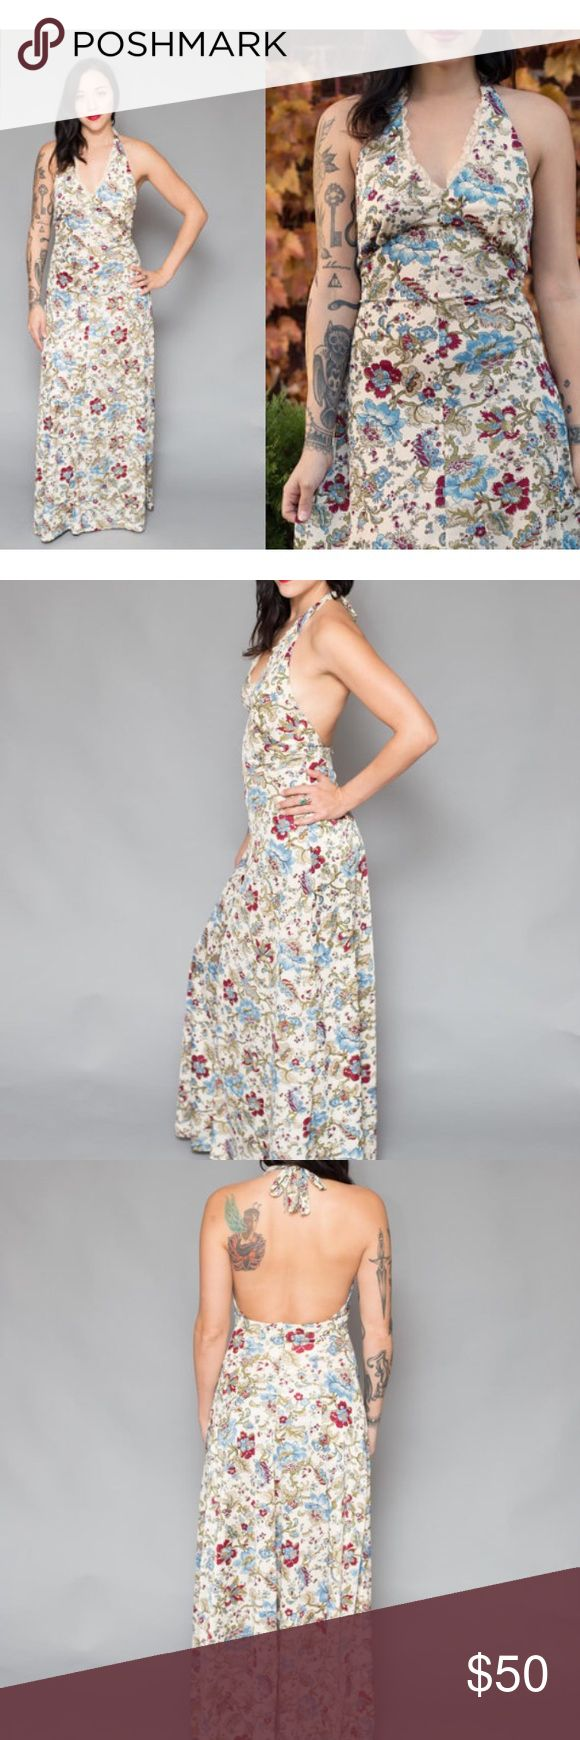 """Vintage 70s Halter Floral Maxi Dress Empire Waist This is a gorgeous, cream, floral, maxi dress circa 1970s.  Featuring a lace, detailed, halter neckline that zips up, this dress is light and airy and perfect for warm weather days.    Includes cropped jacket.    Best fits a modern size: M     • Bust: 14.5 inches across (has stretch)  • Waist: 12.5 inches across (stretches)  • Hip: Free  • Length: 56""""  •Label: Handmade (Tag reads; Specially handmade by Donna) Vintage Dresses Maxi"""